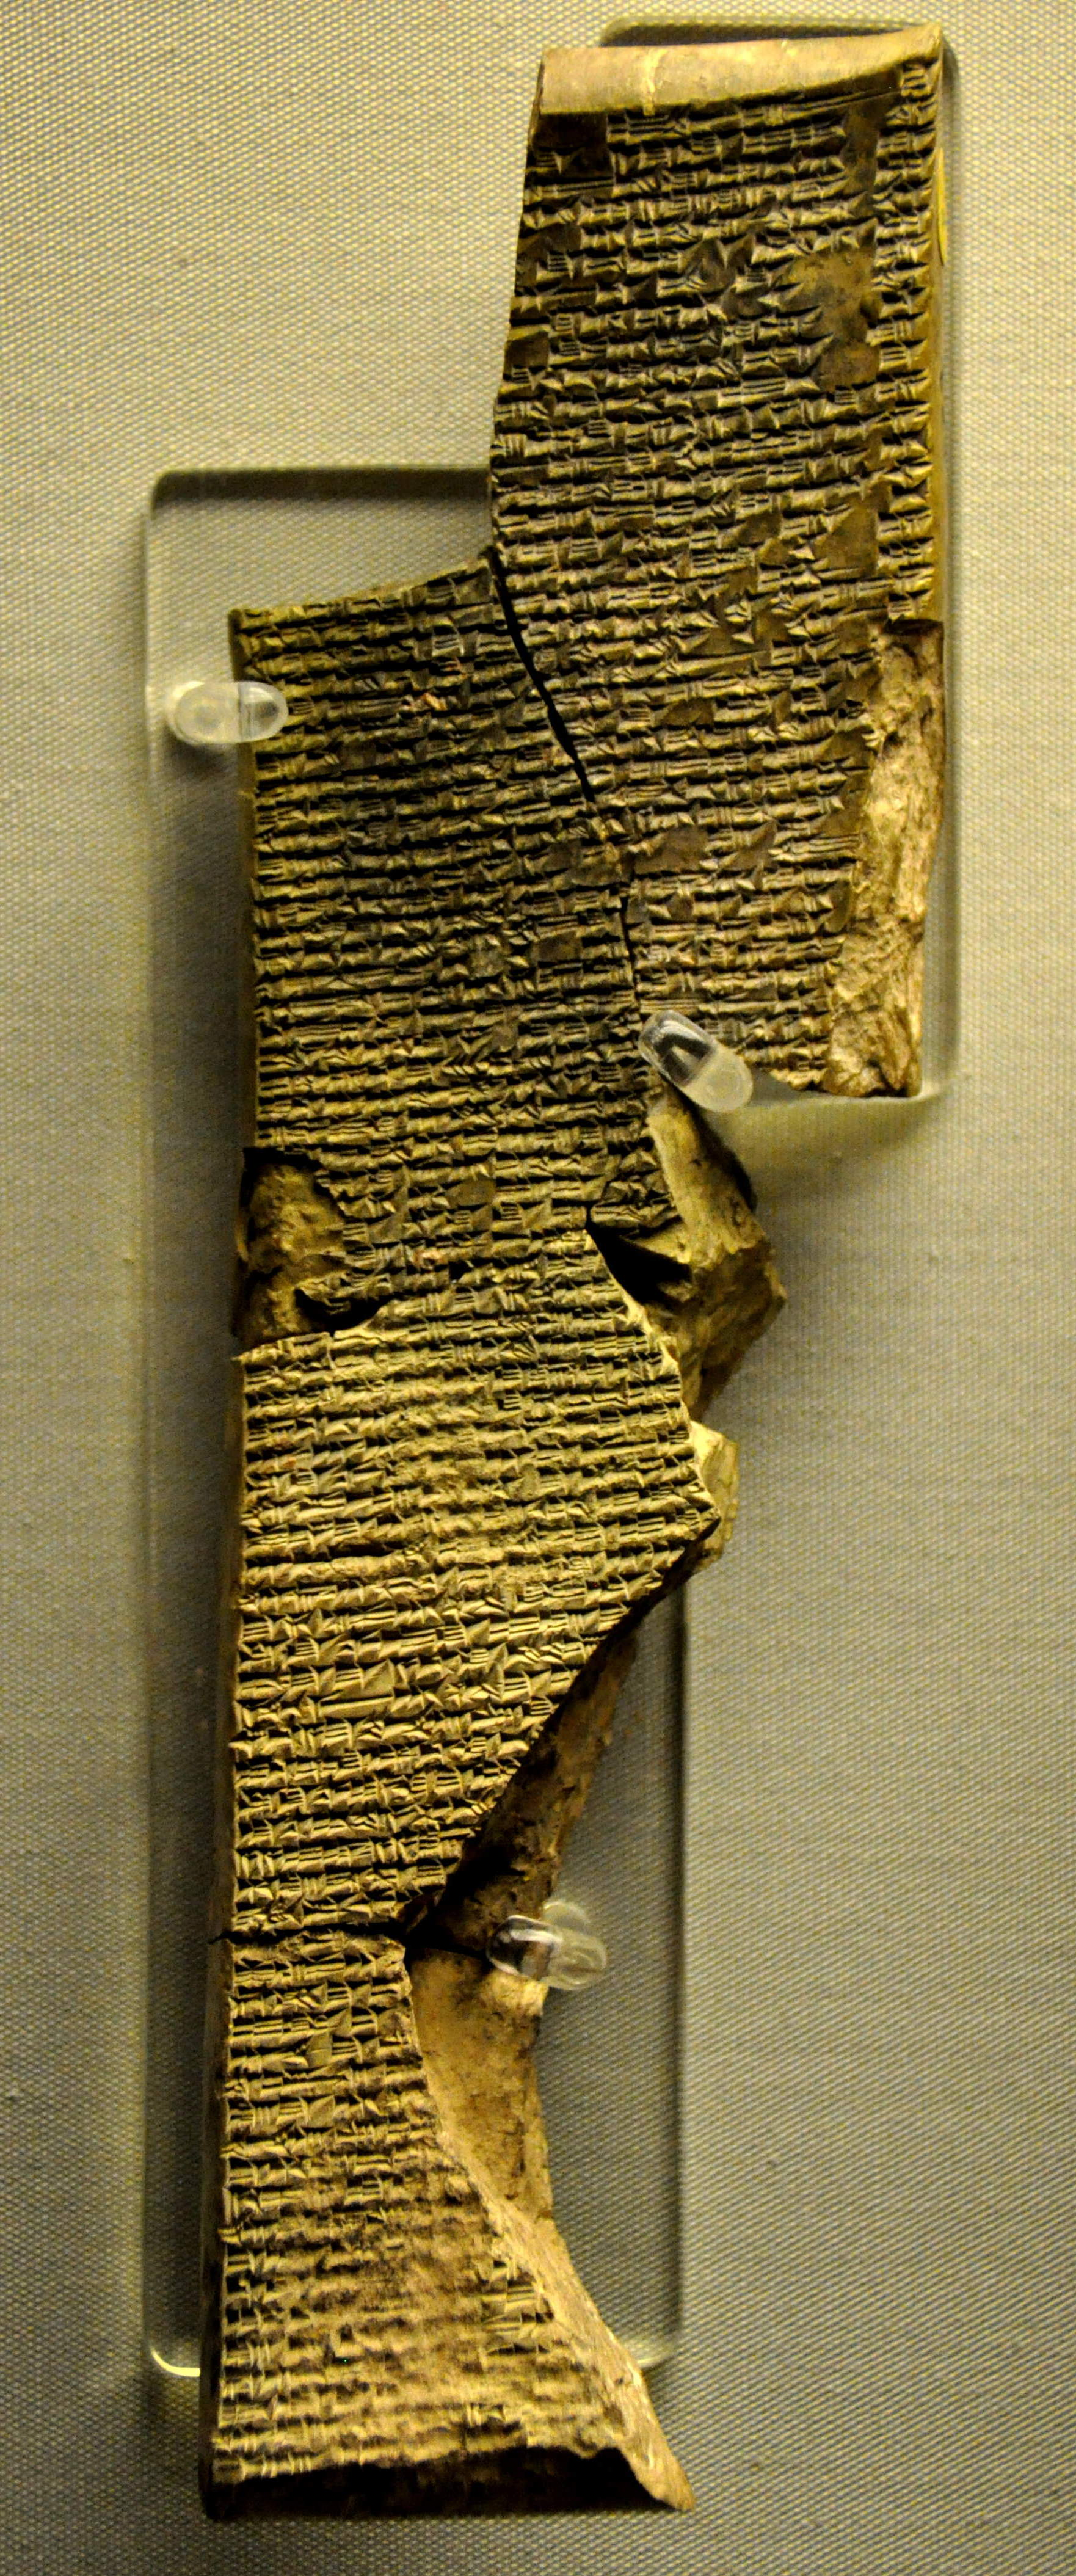 Photo of a tablet from the Enuma Elish